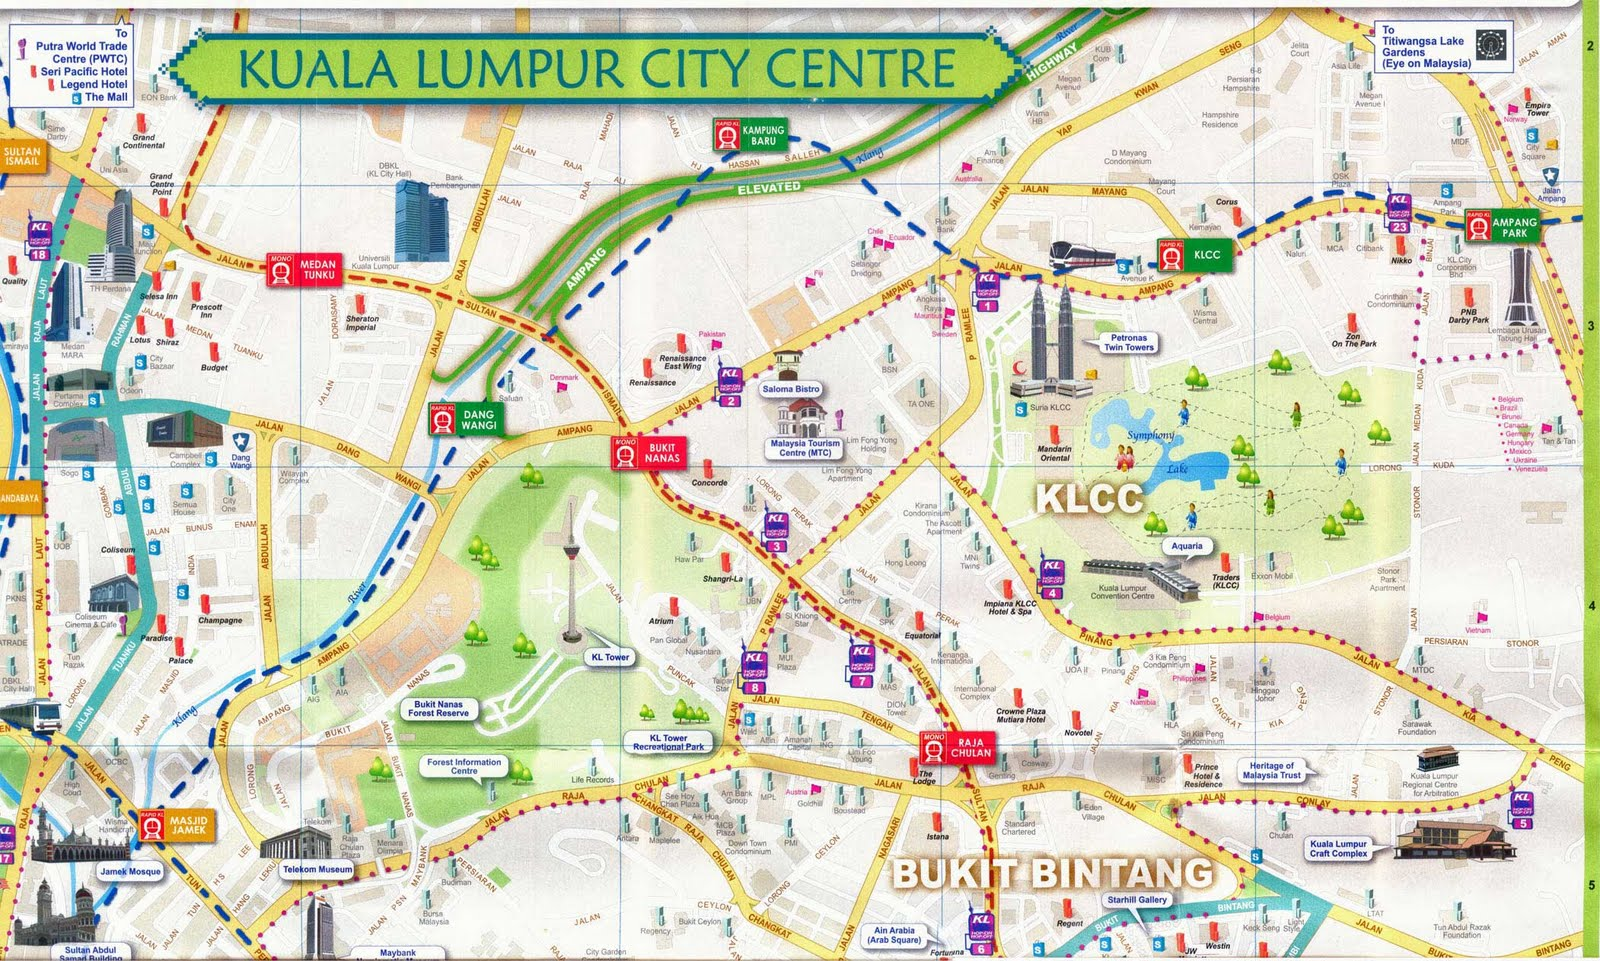 Getting From Kuala Lumpur Airport To City Centre